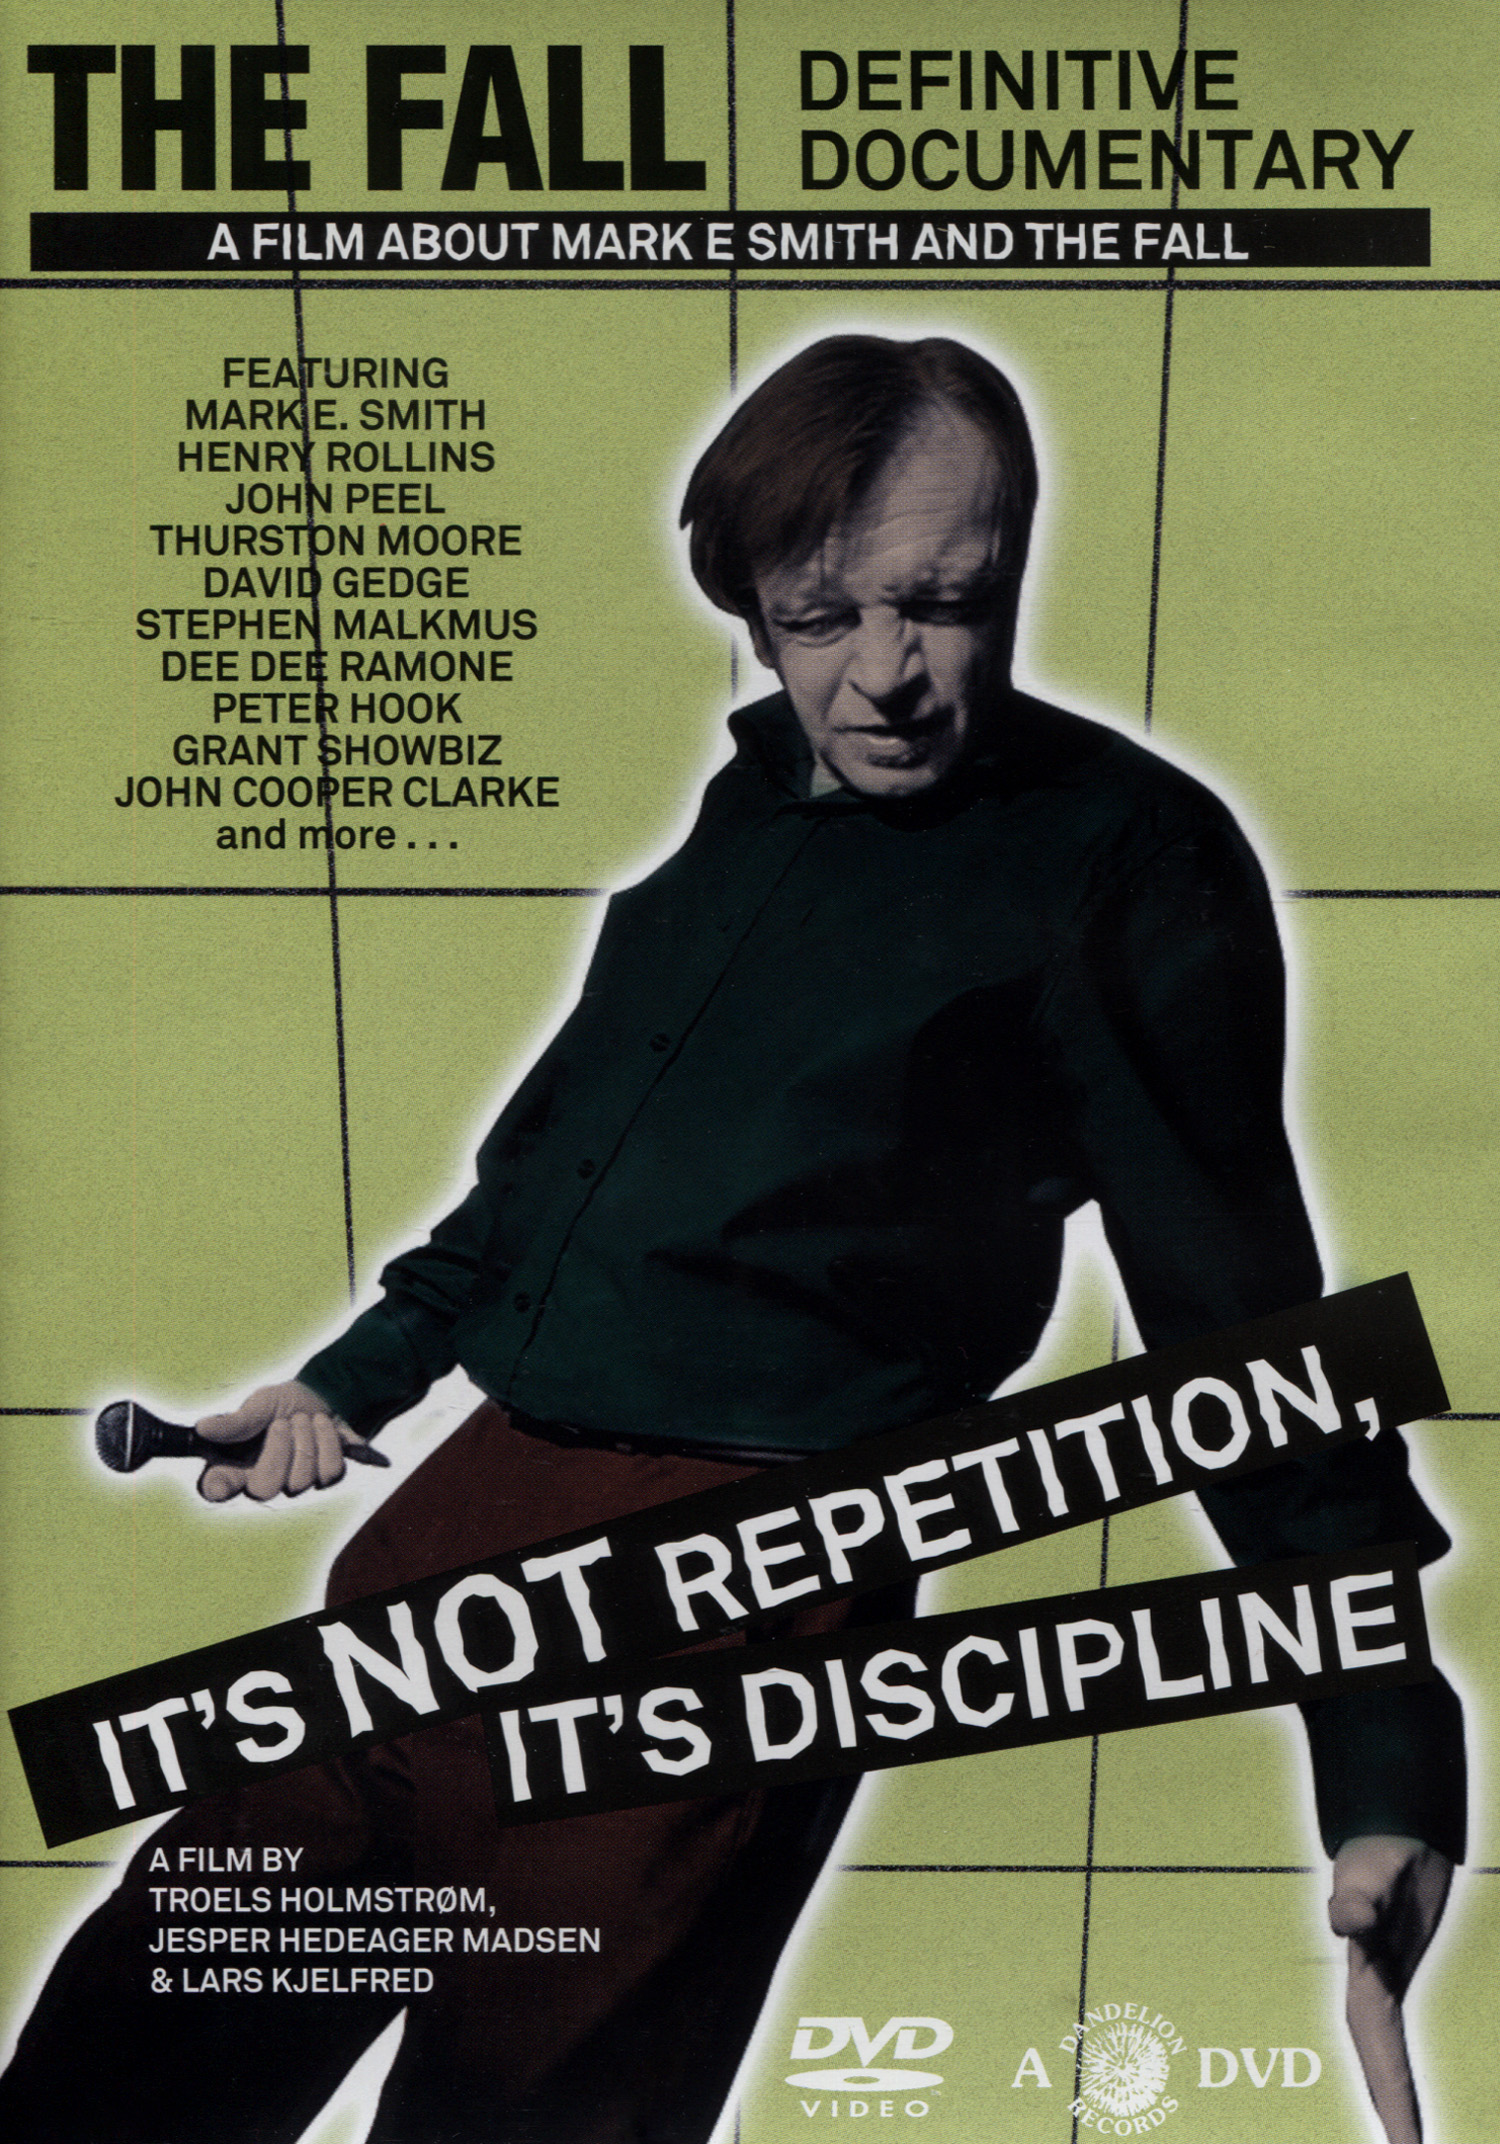 The Fall: It's Not Repetition, It's Discipline